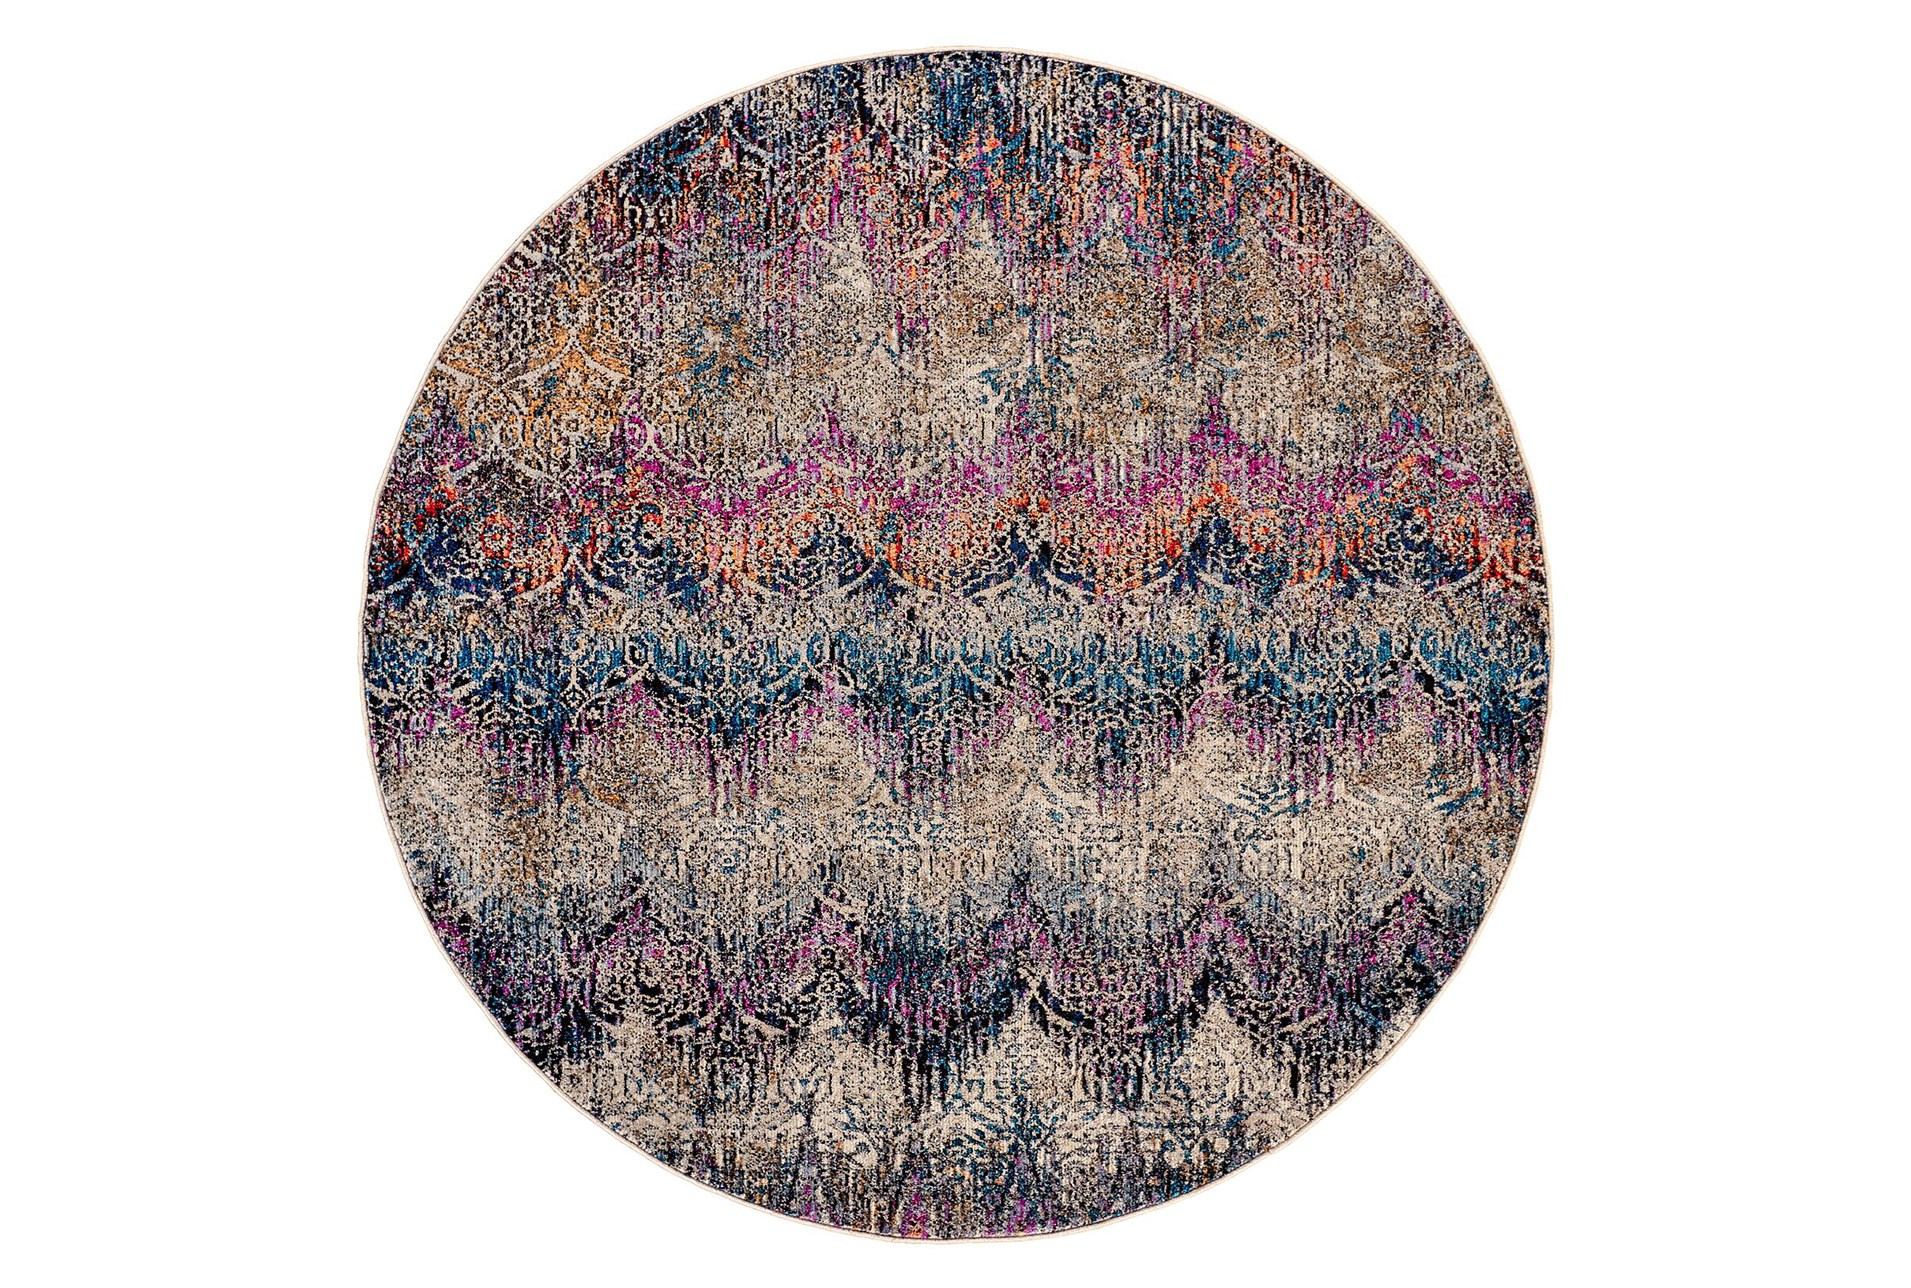 94 Inch Round Rug Magenta And Orange Ombre Ikat Qty 1 Has Been Successfully Added To Your Cart